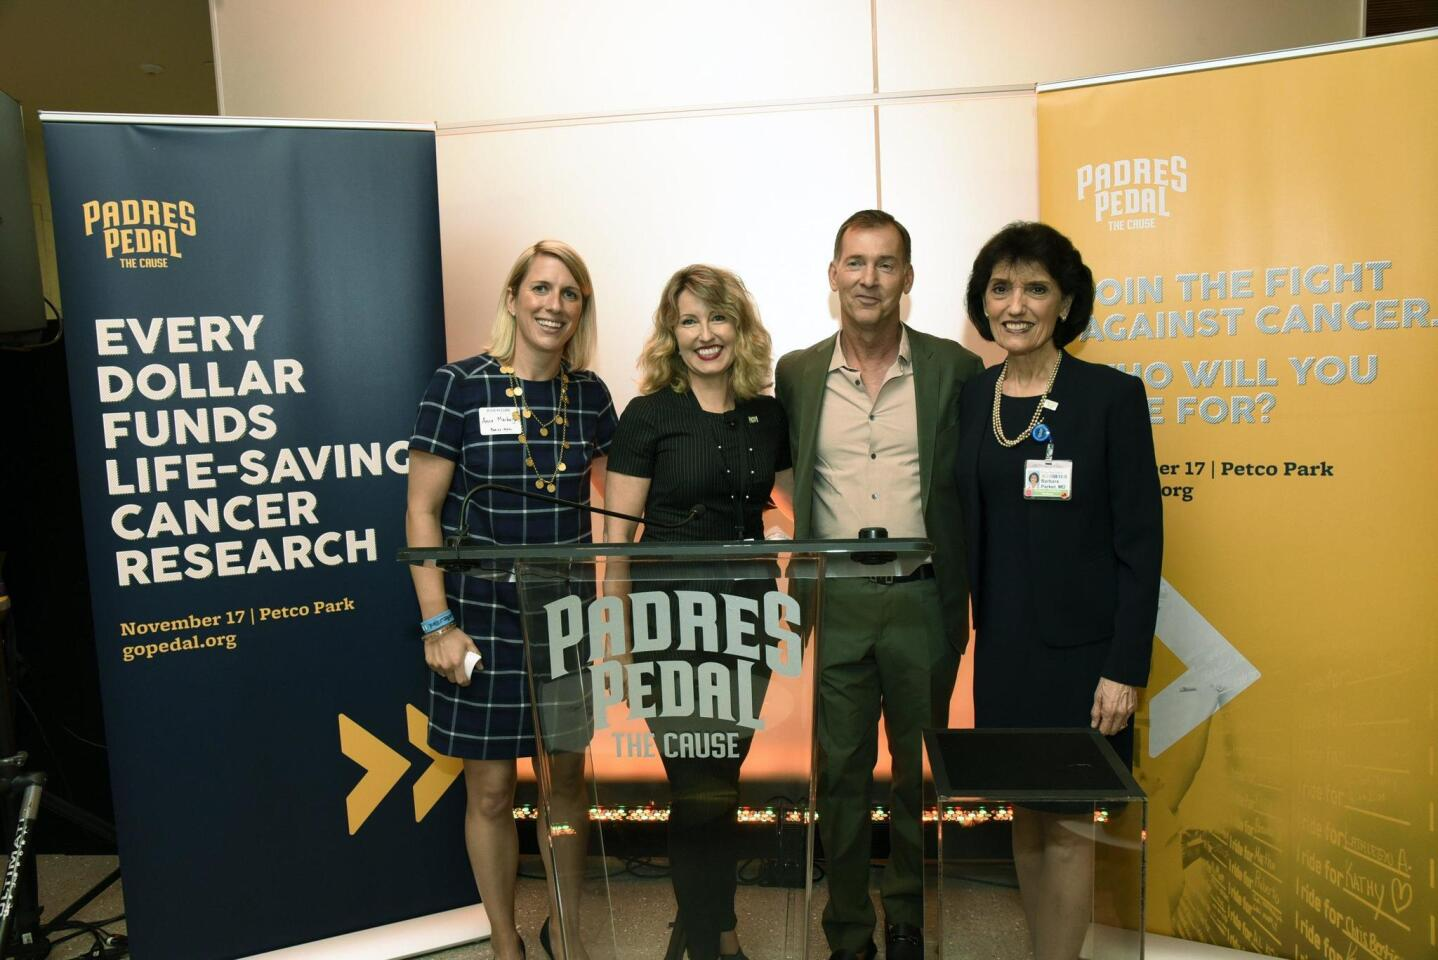 Kickoff held for 2018 season of Padres Pedal the Cause